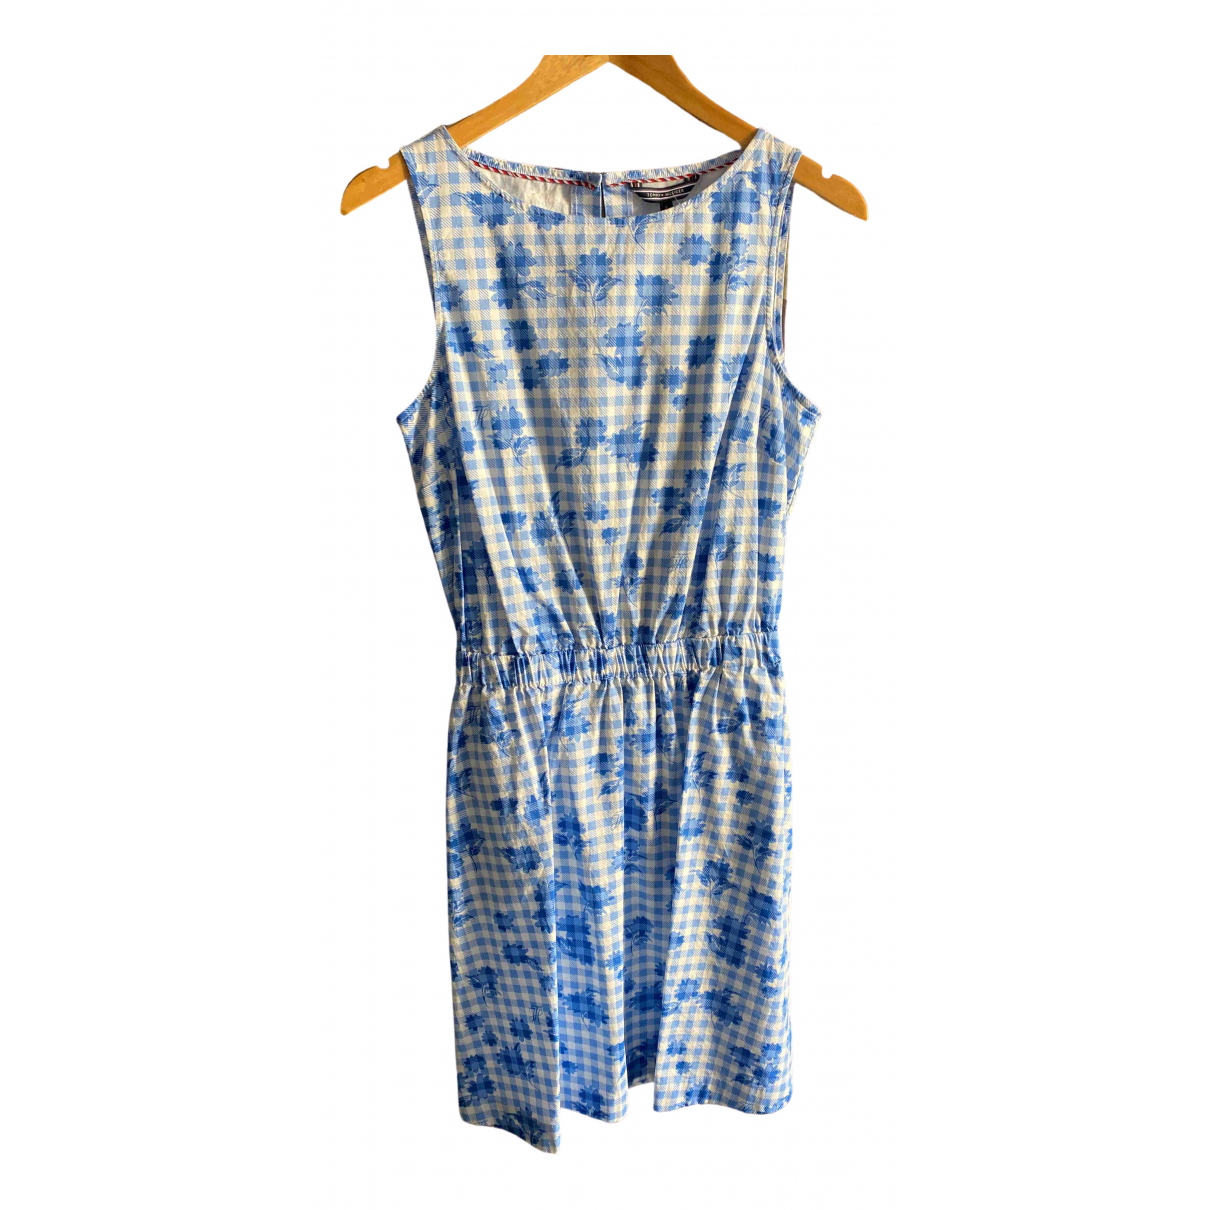 Tommy Hilfiger \N Blue Cotton dress for Women 8 US